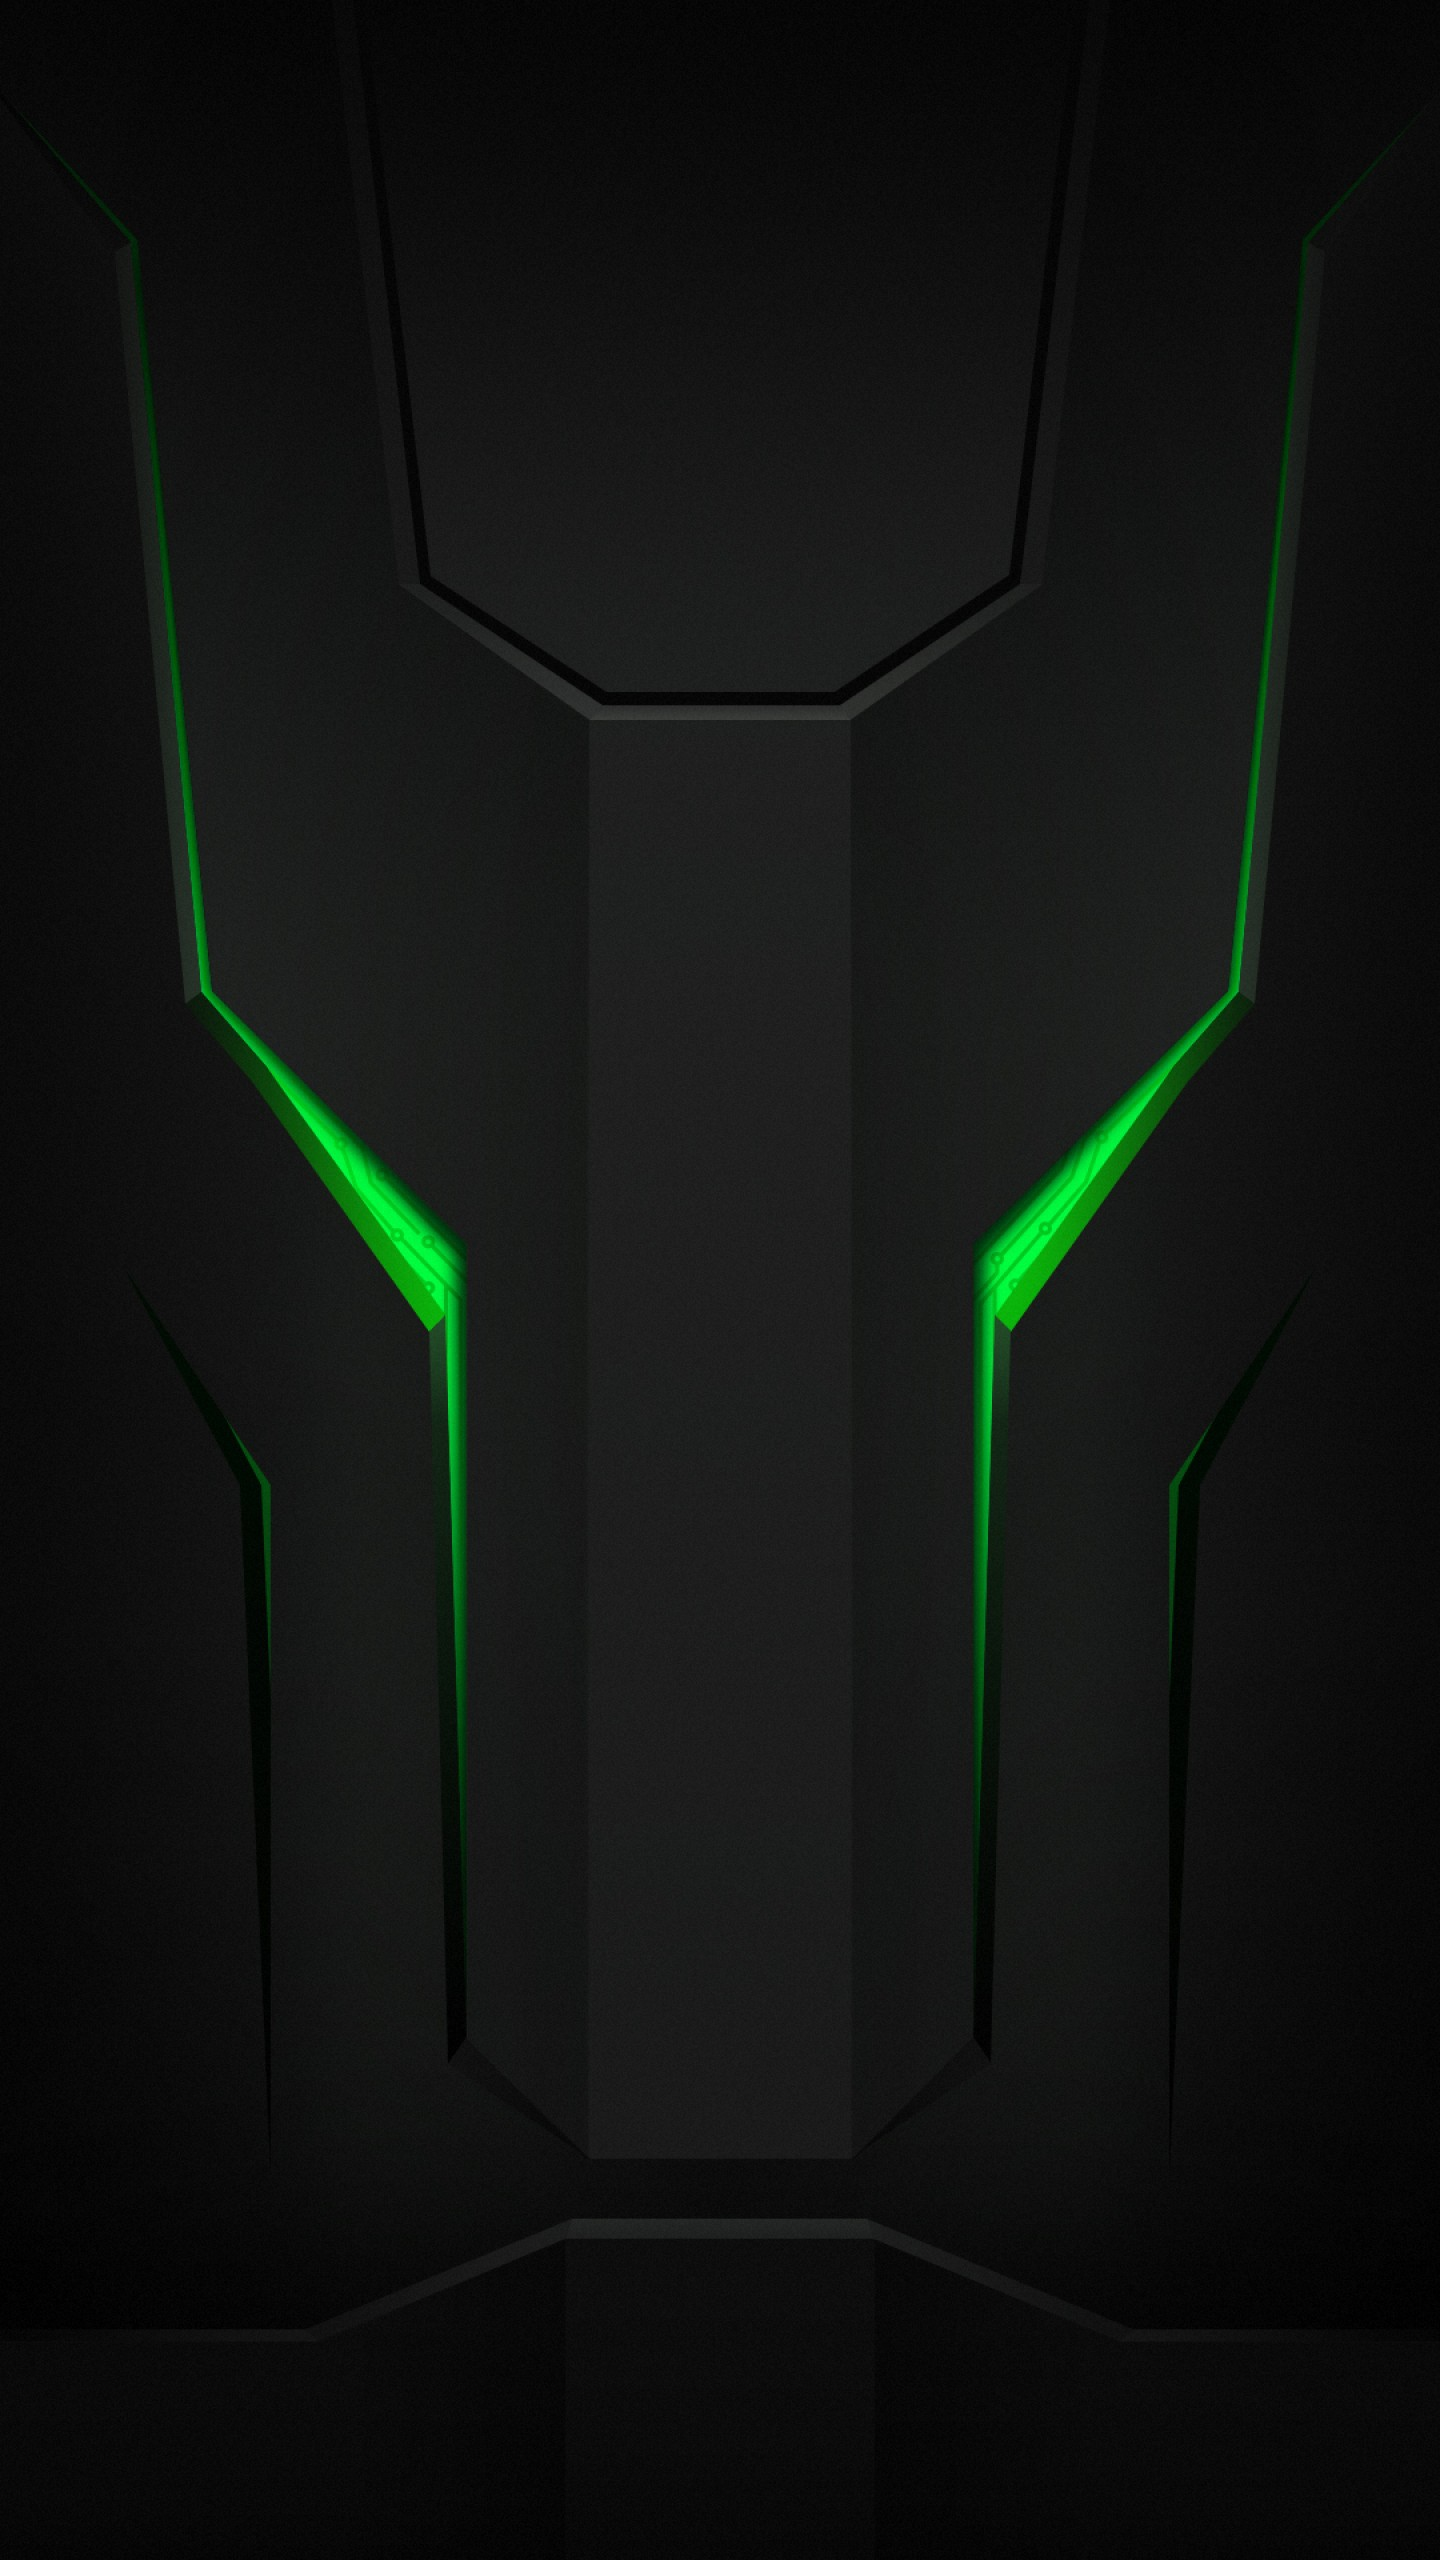 Wallpaper Xiaomi Black Shark Helo Abstract Android 8 0 Hd Os 20886